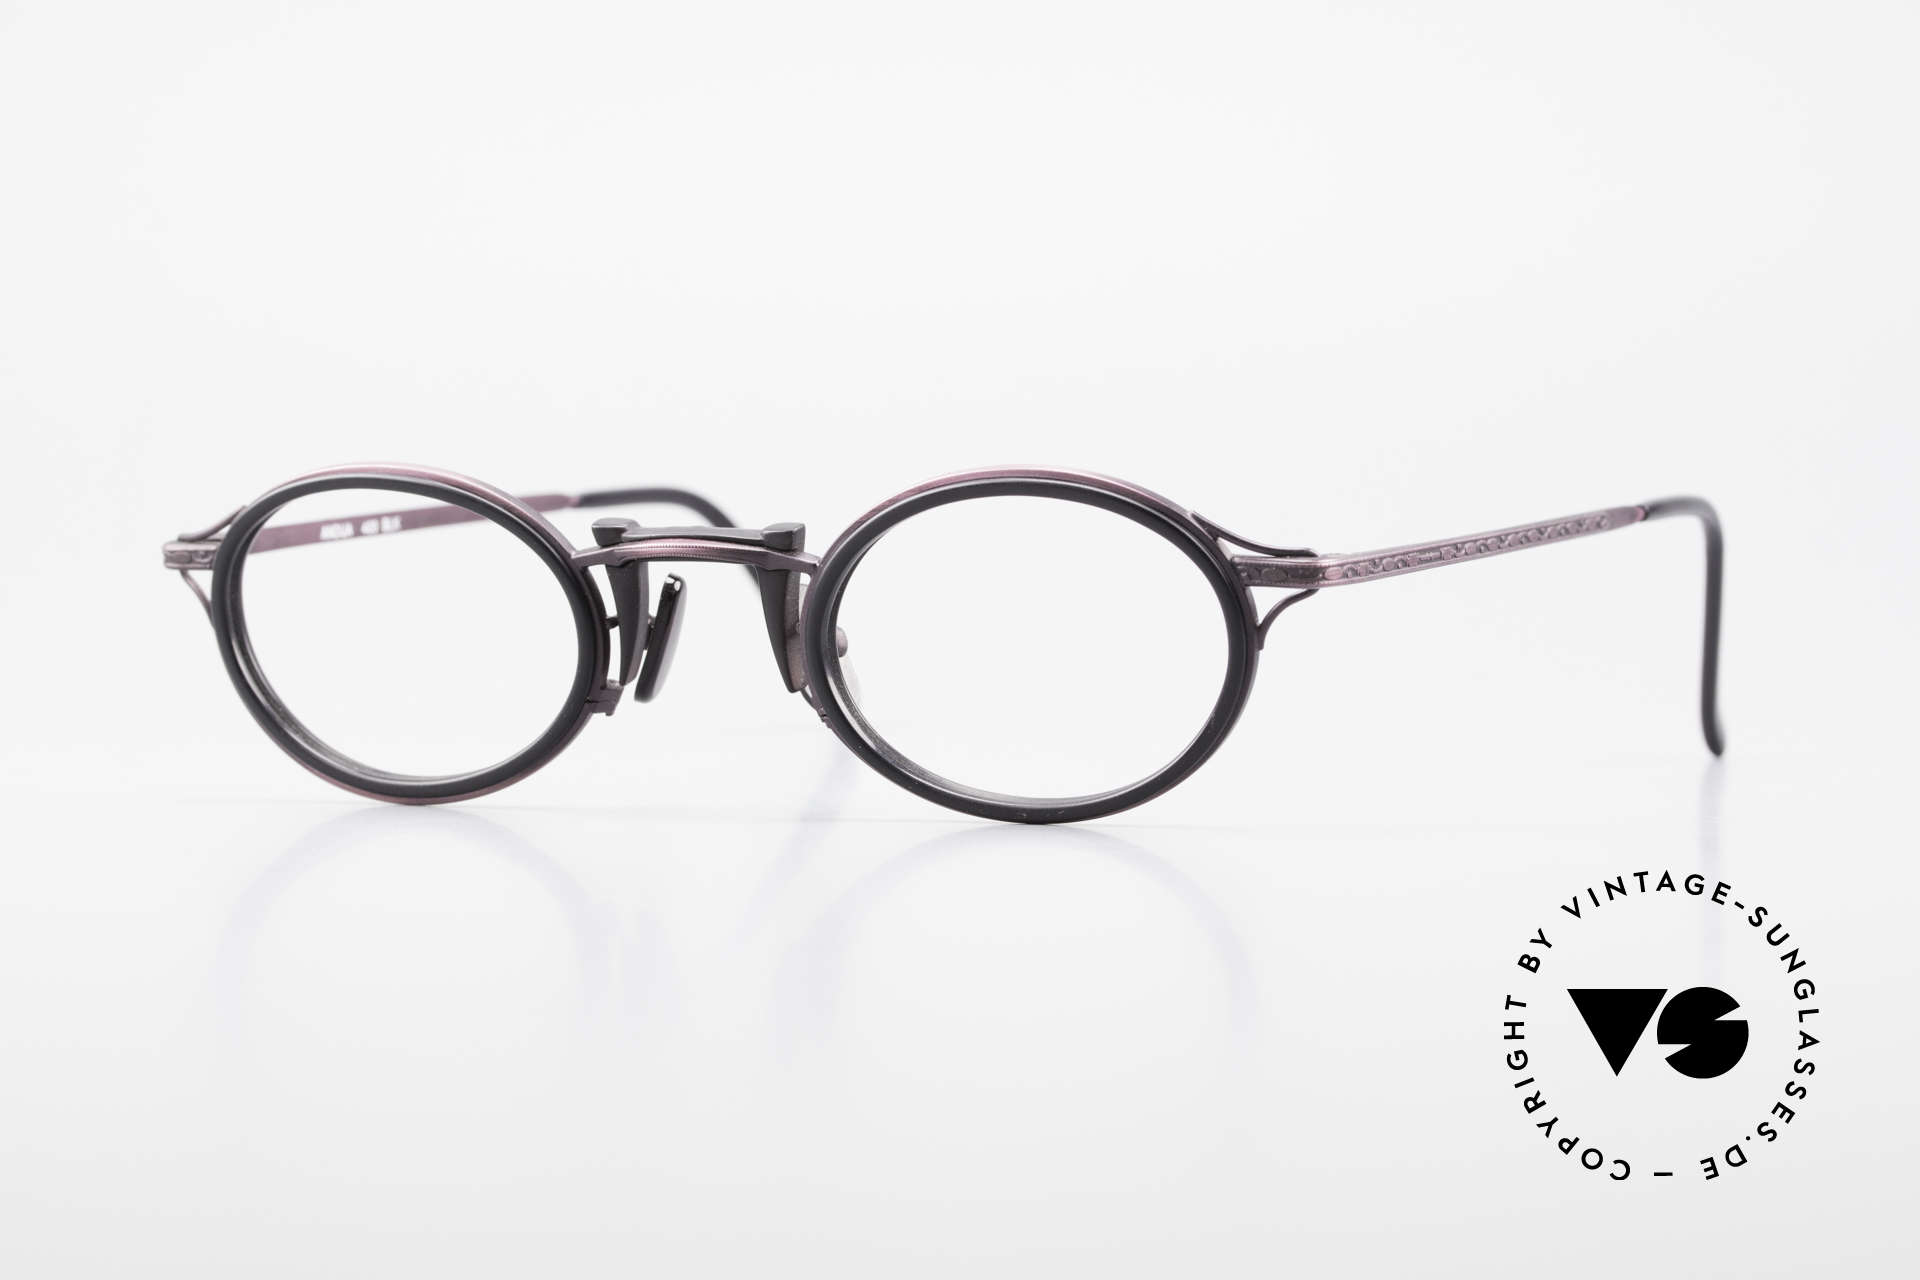 Freudenhaus Andua Oval 90's Designer Frame, vintage designer glasses by FREUDENHAUS, Munich, Made for Women